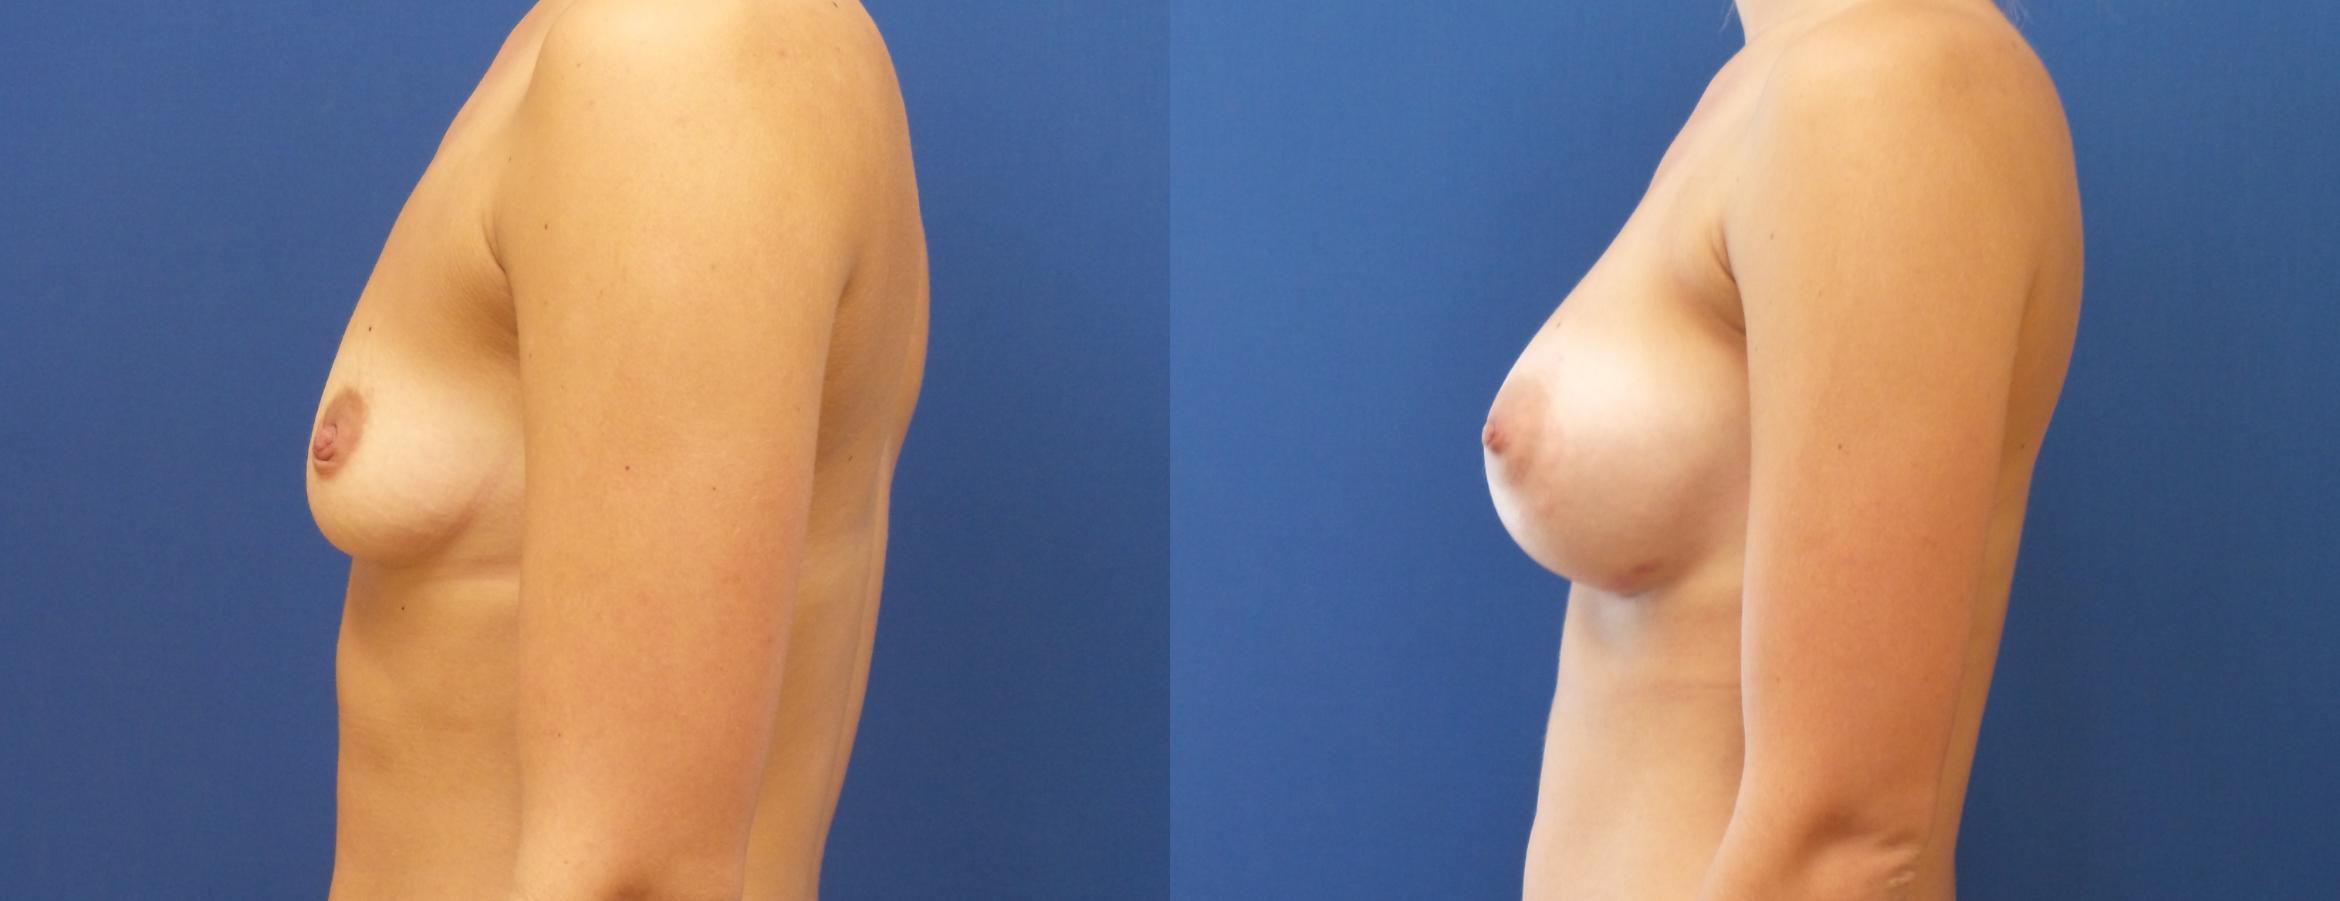 Breast Augmentation Case 205 Before & After View #1 | Webster, TX | Houston Plastic and Reconstructive Surgery